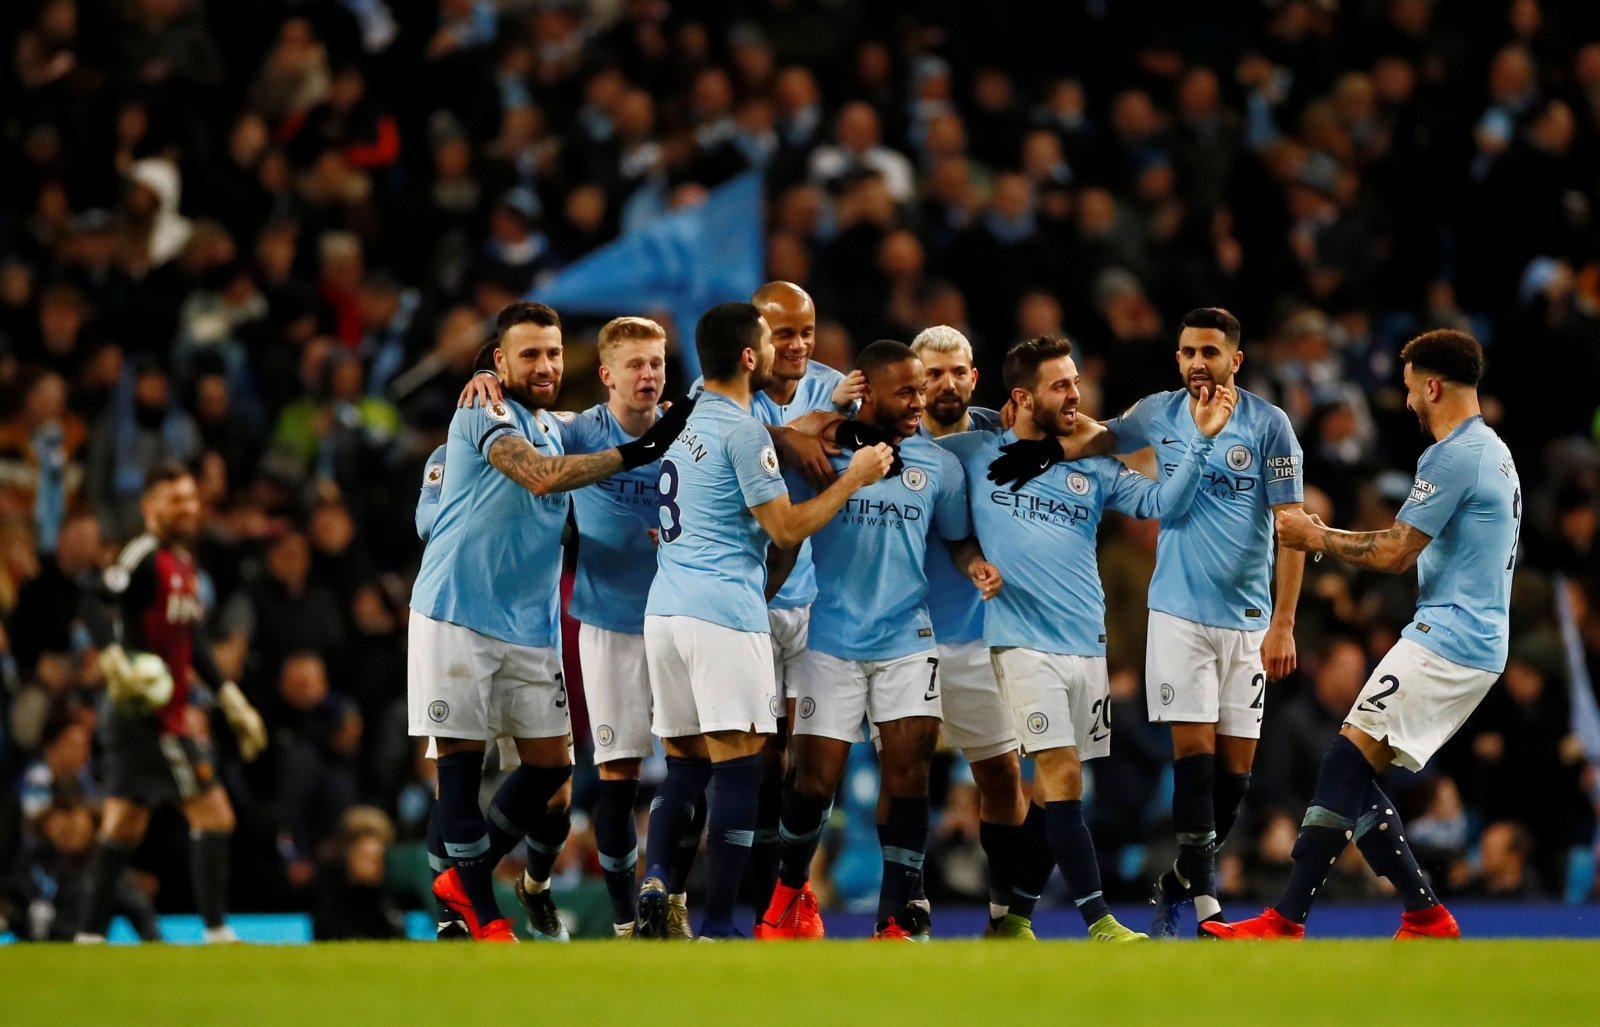 Raheem Sterling: Manchester City star undoubtedly one of the world's best